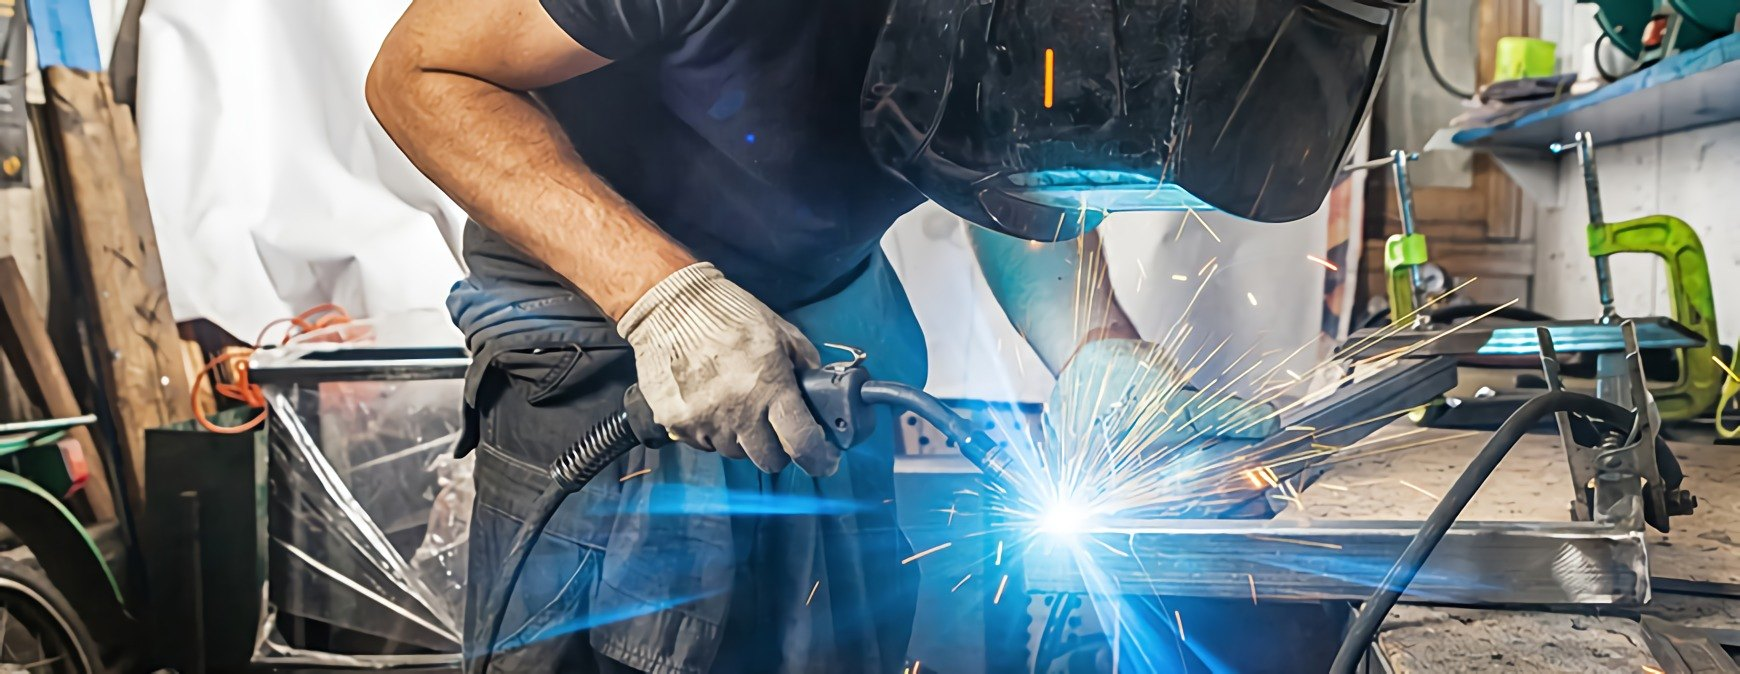 welding in a workshop